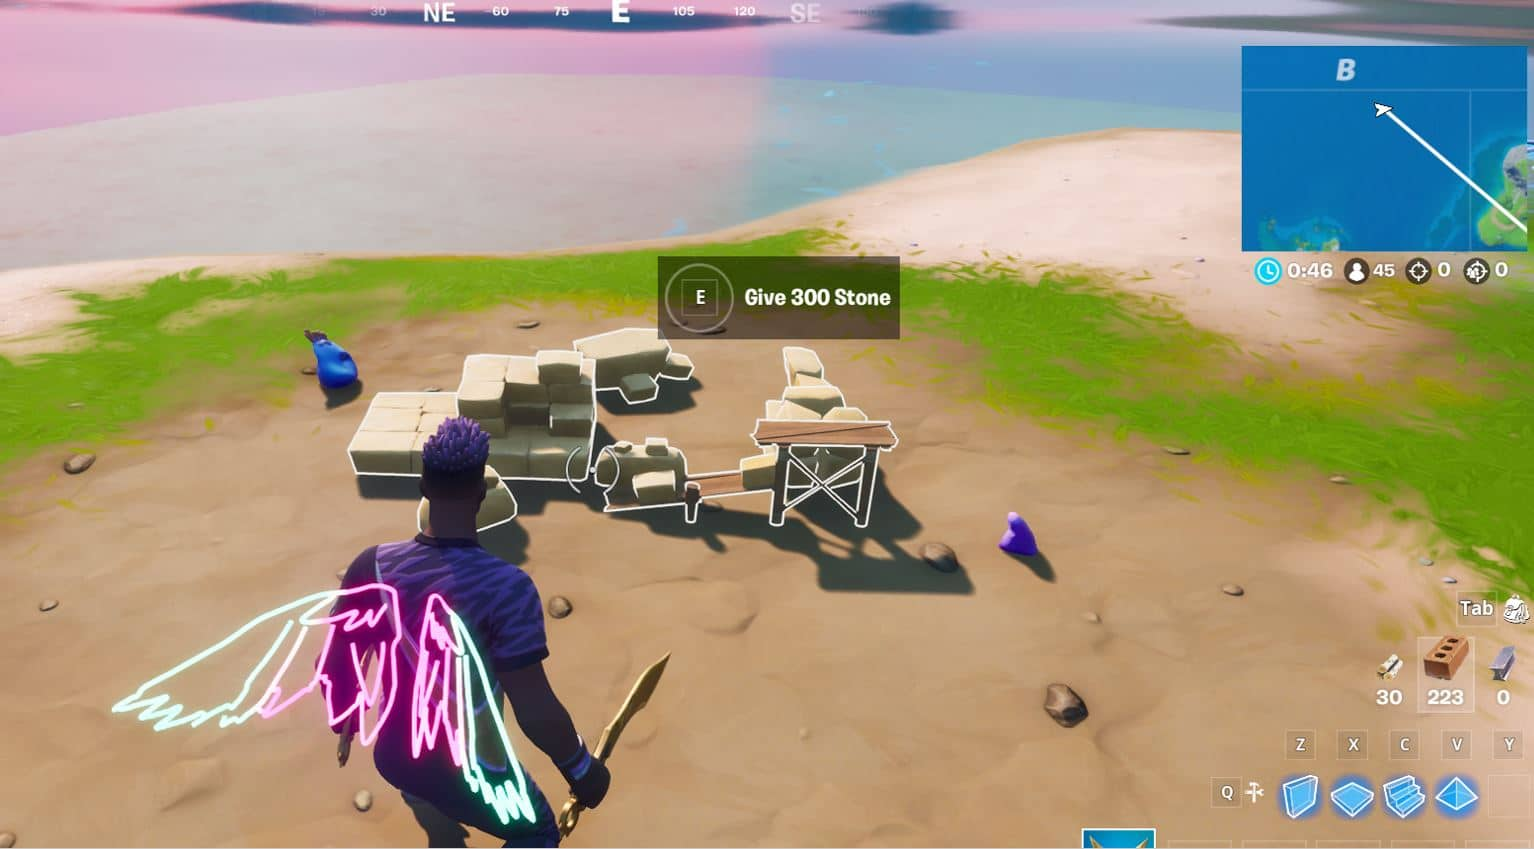 Fortnite Secret Mission- Give Stone to Coral Buddies